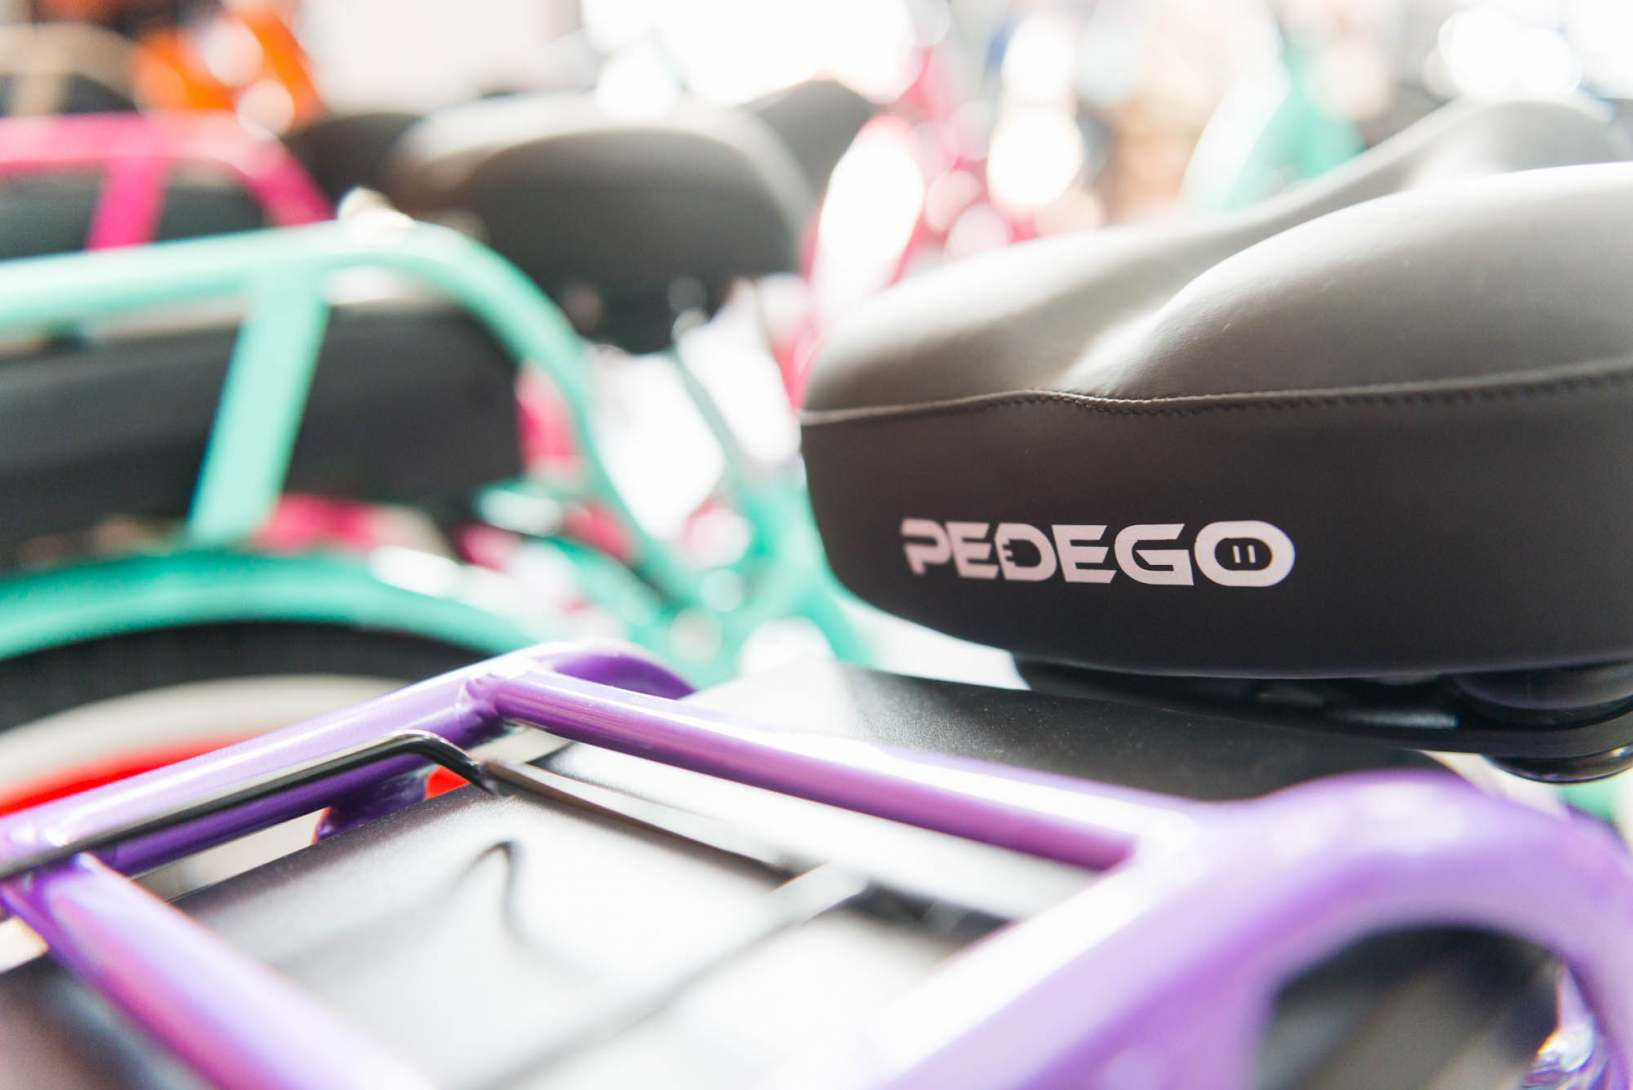 Pedego electric bikes come in many festive holiday colors.